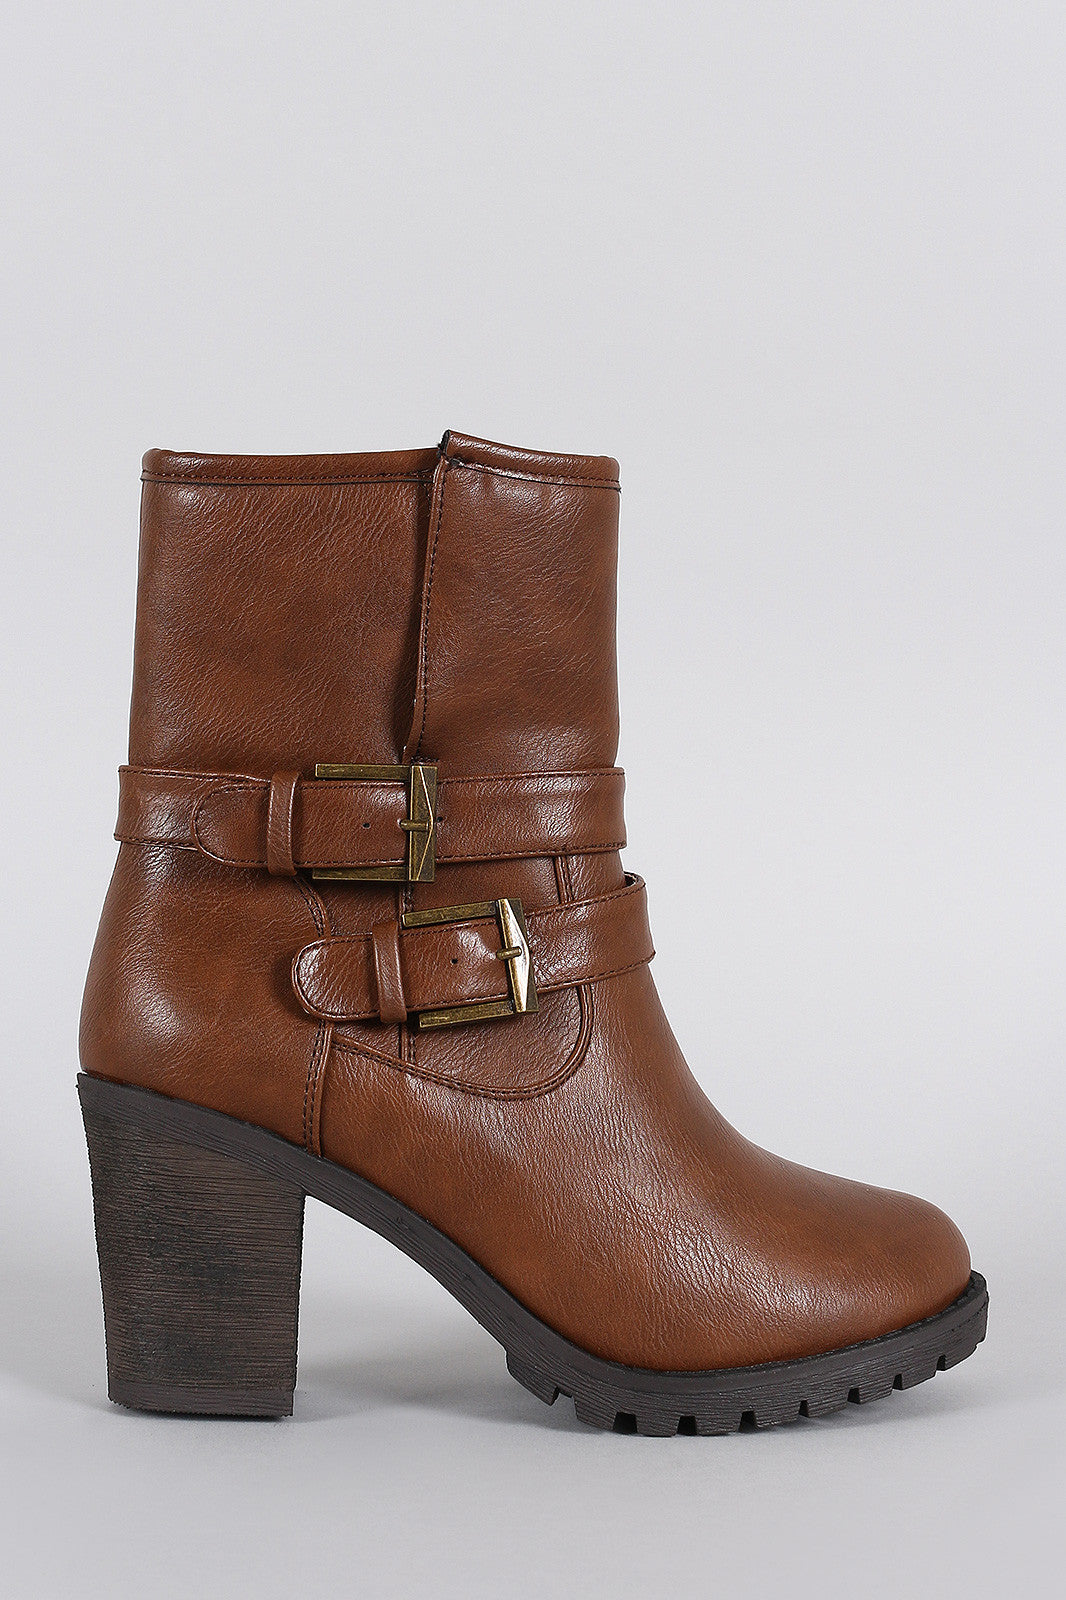 Slit Moto Lug Chunky Heel Ankle Boots - Thick 'N' Curvy Shop - 1